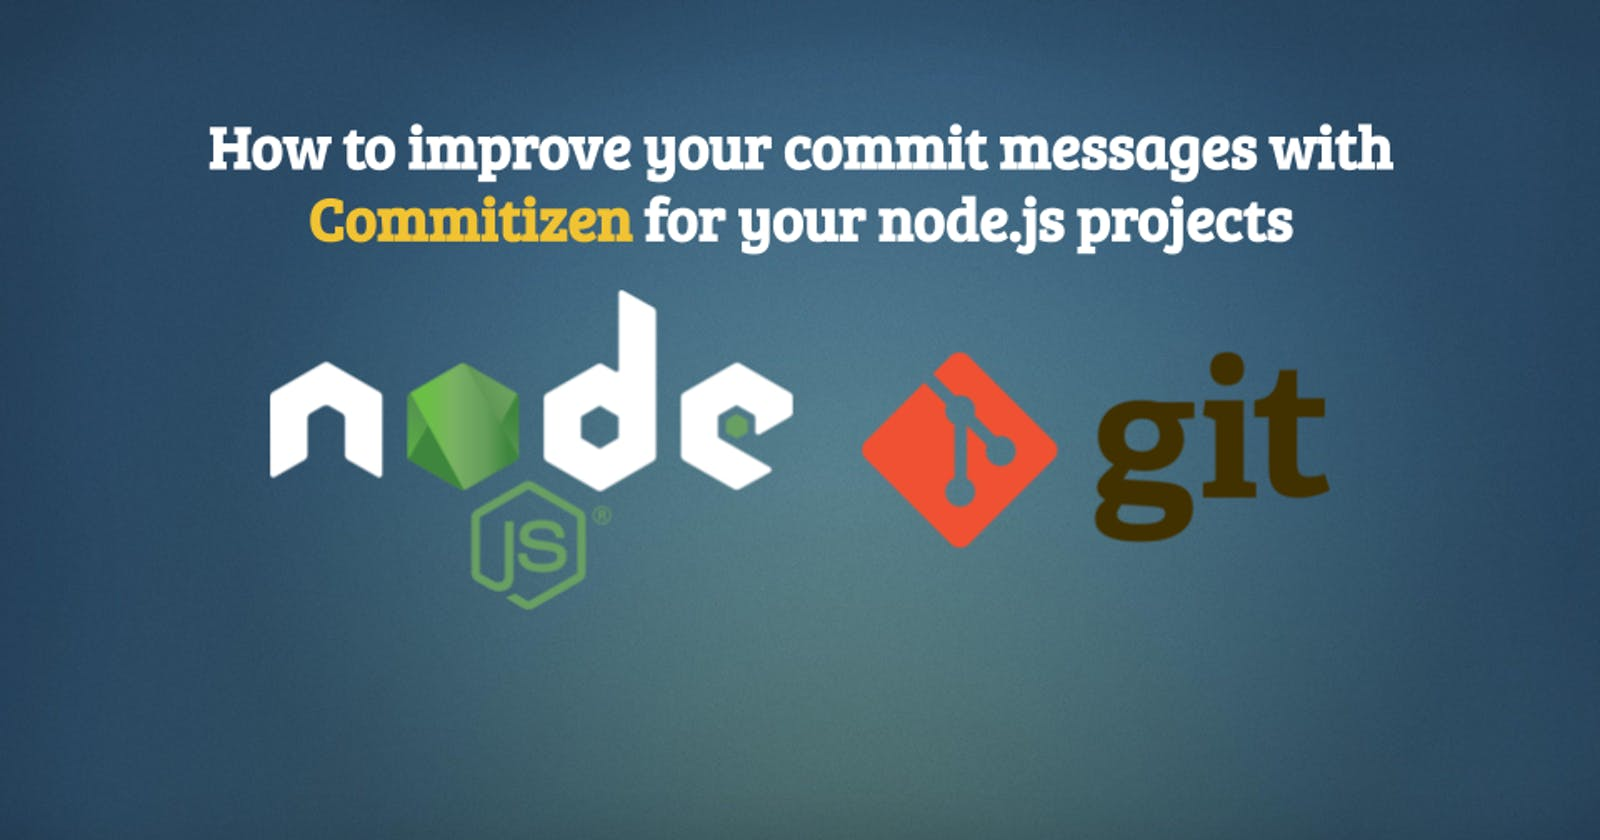 How to improve your commit messages with Commitizen for your node.js projects